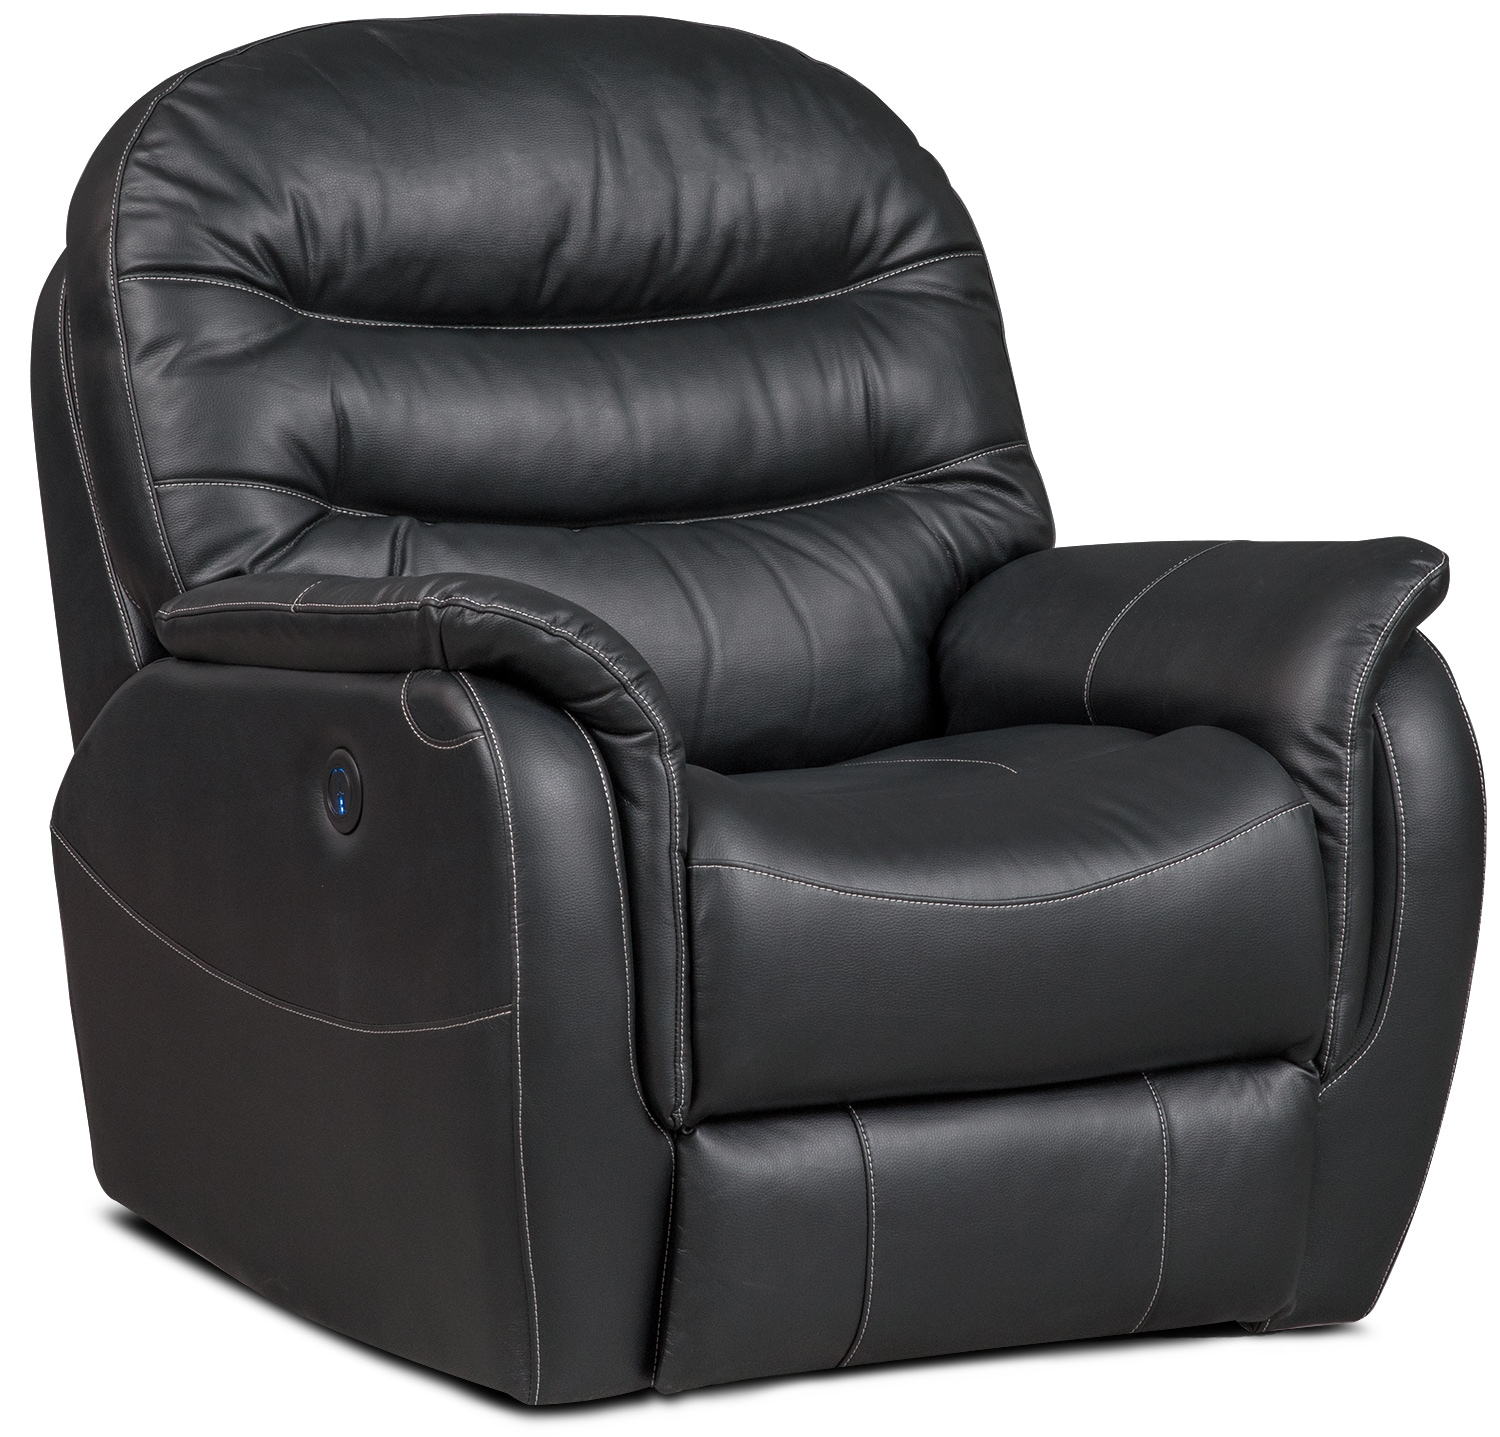 Milo Power Recliner - Black